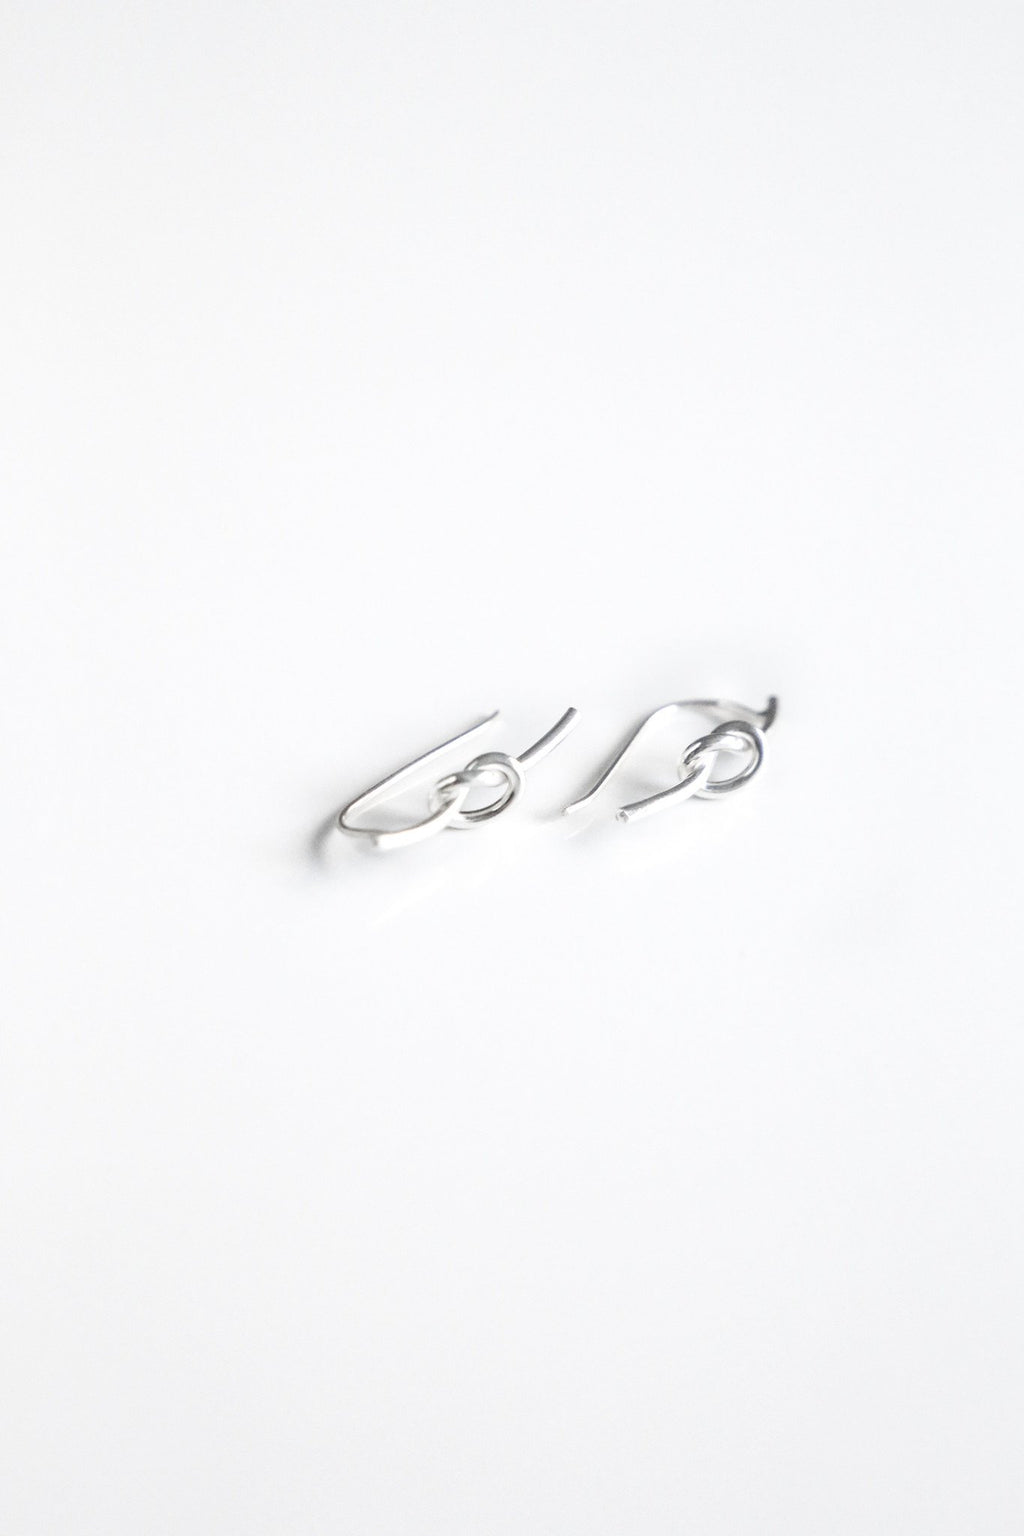 S. Silver Knot Earrings - Boutique Minimaliste